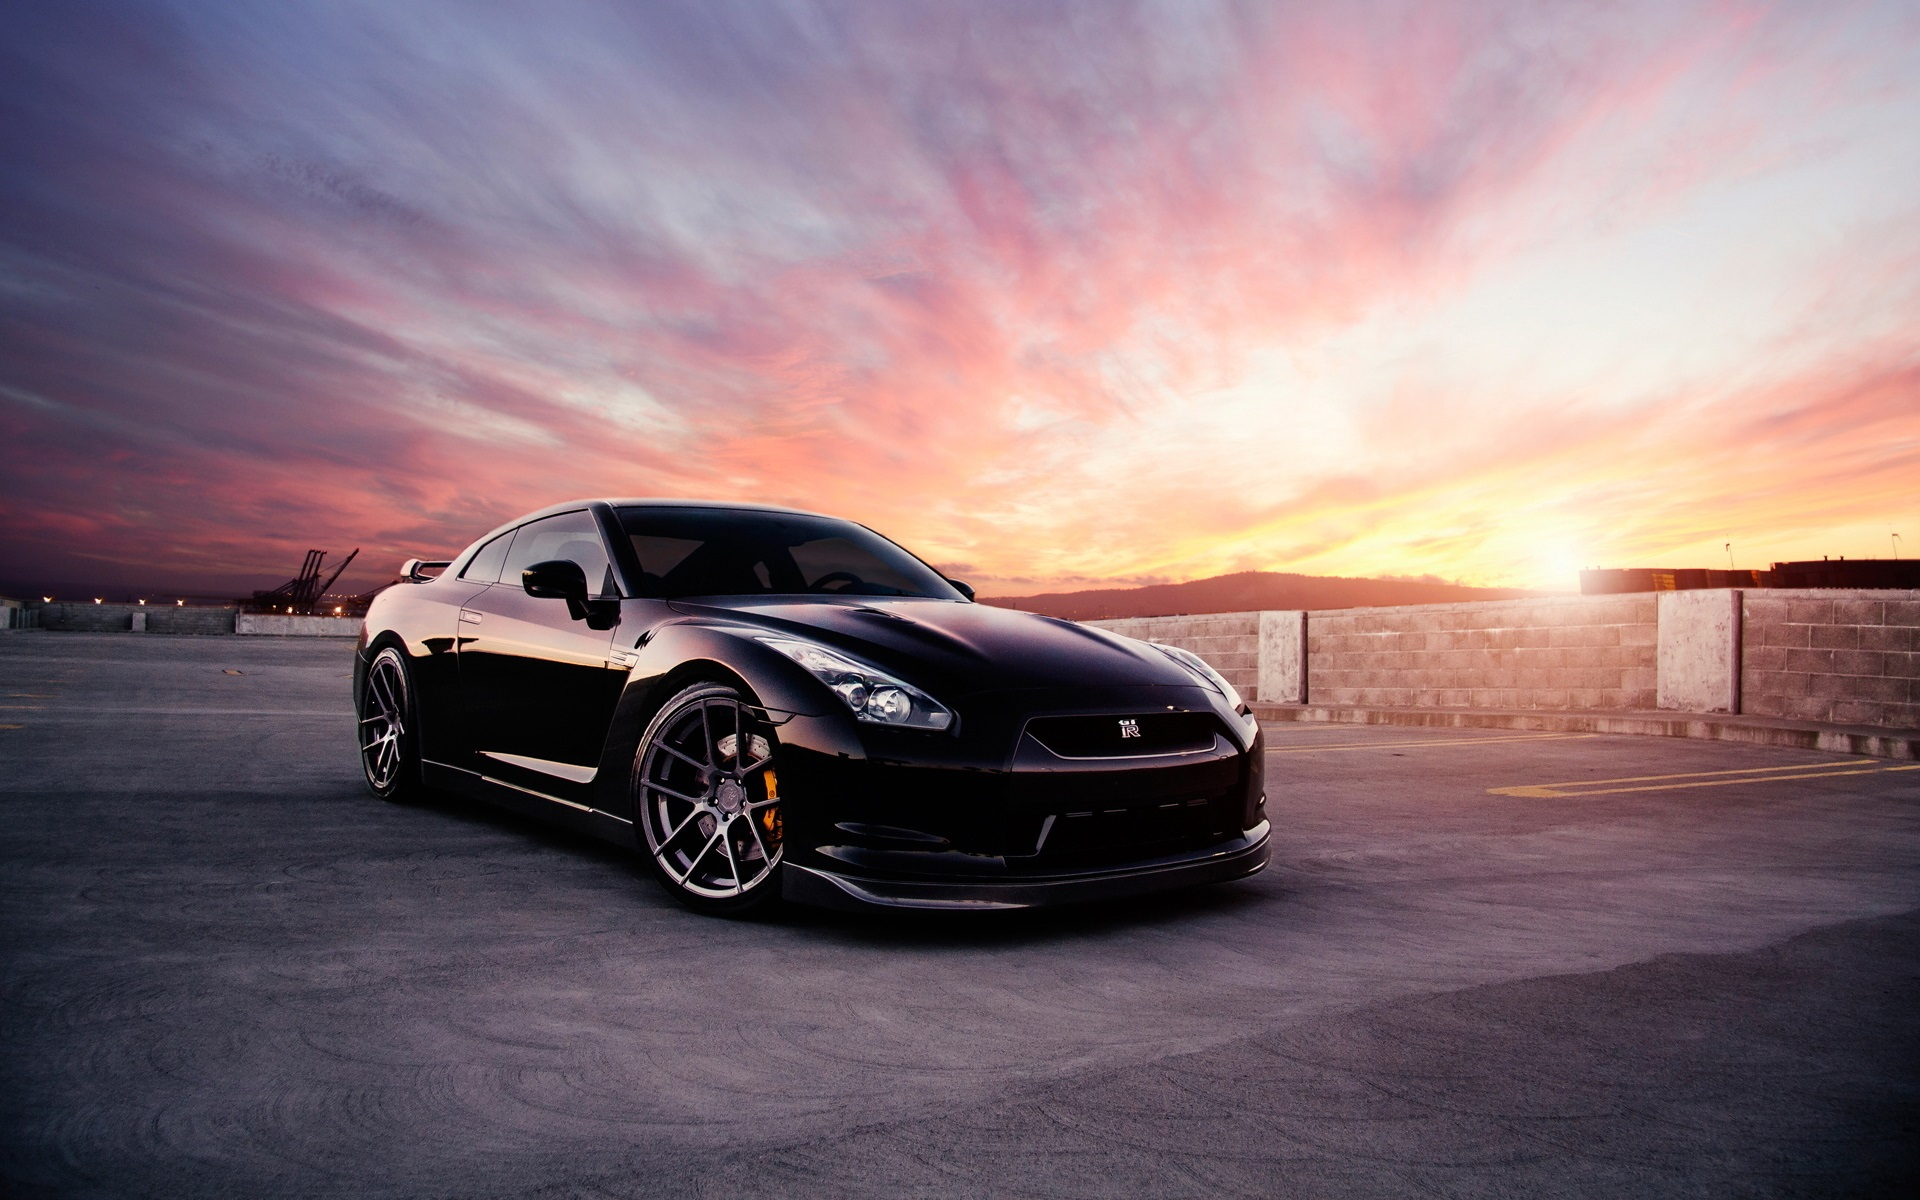 Nissan Gt R Black Car At Sunset 640x1136 Iphone 5 5s 5c Se Wallpaper Background Picture Image